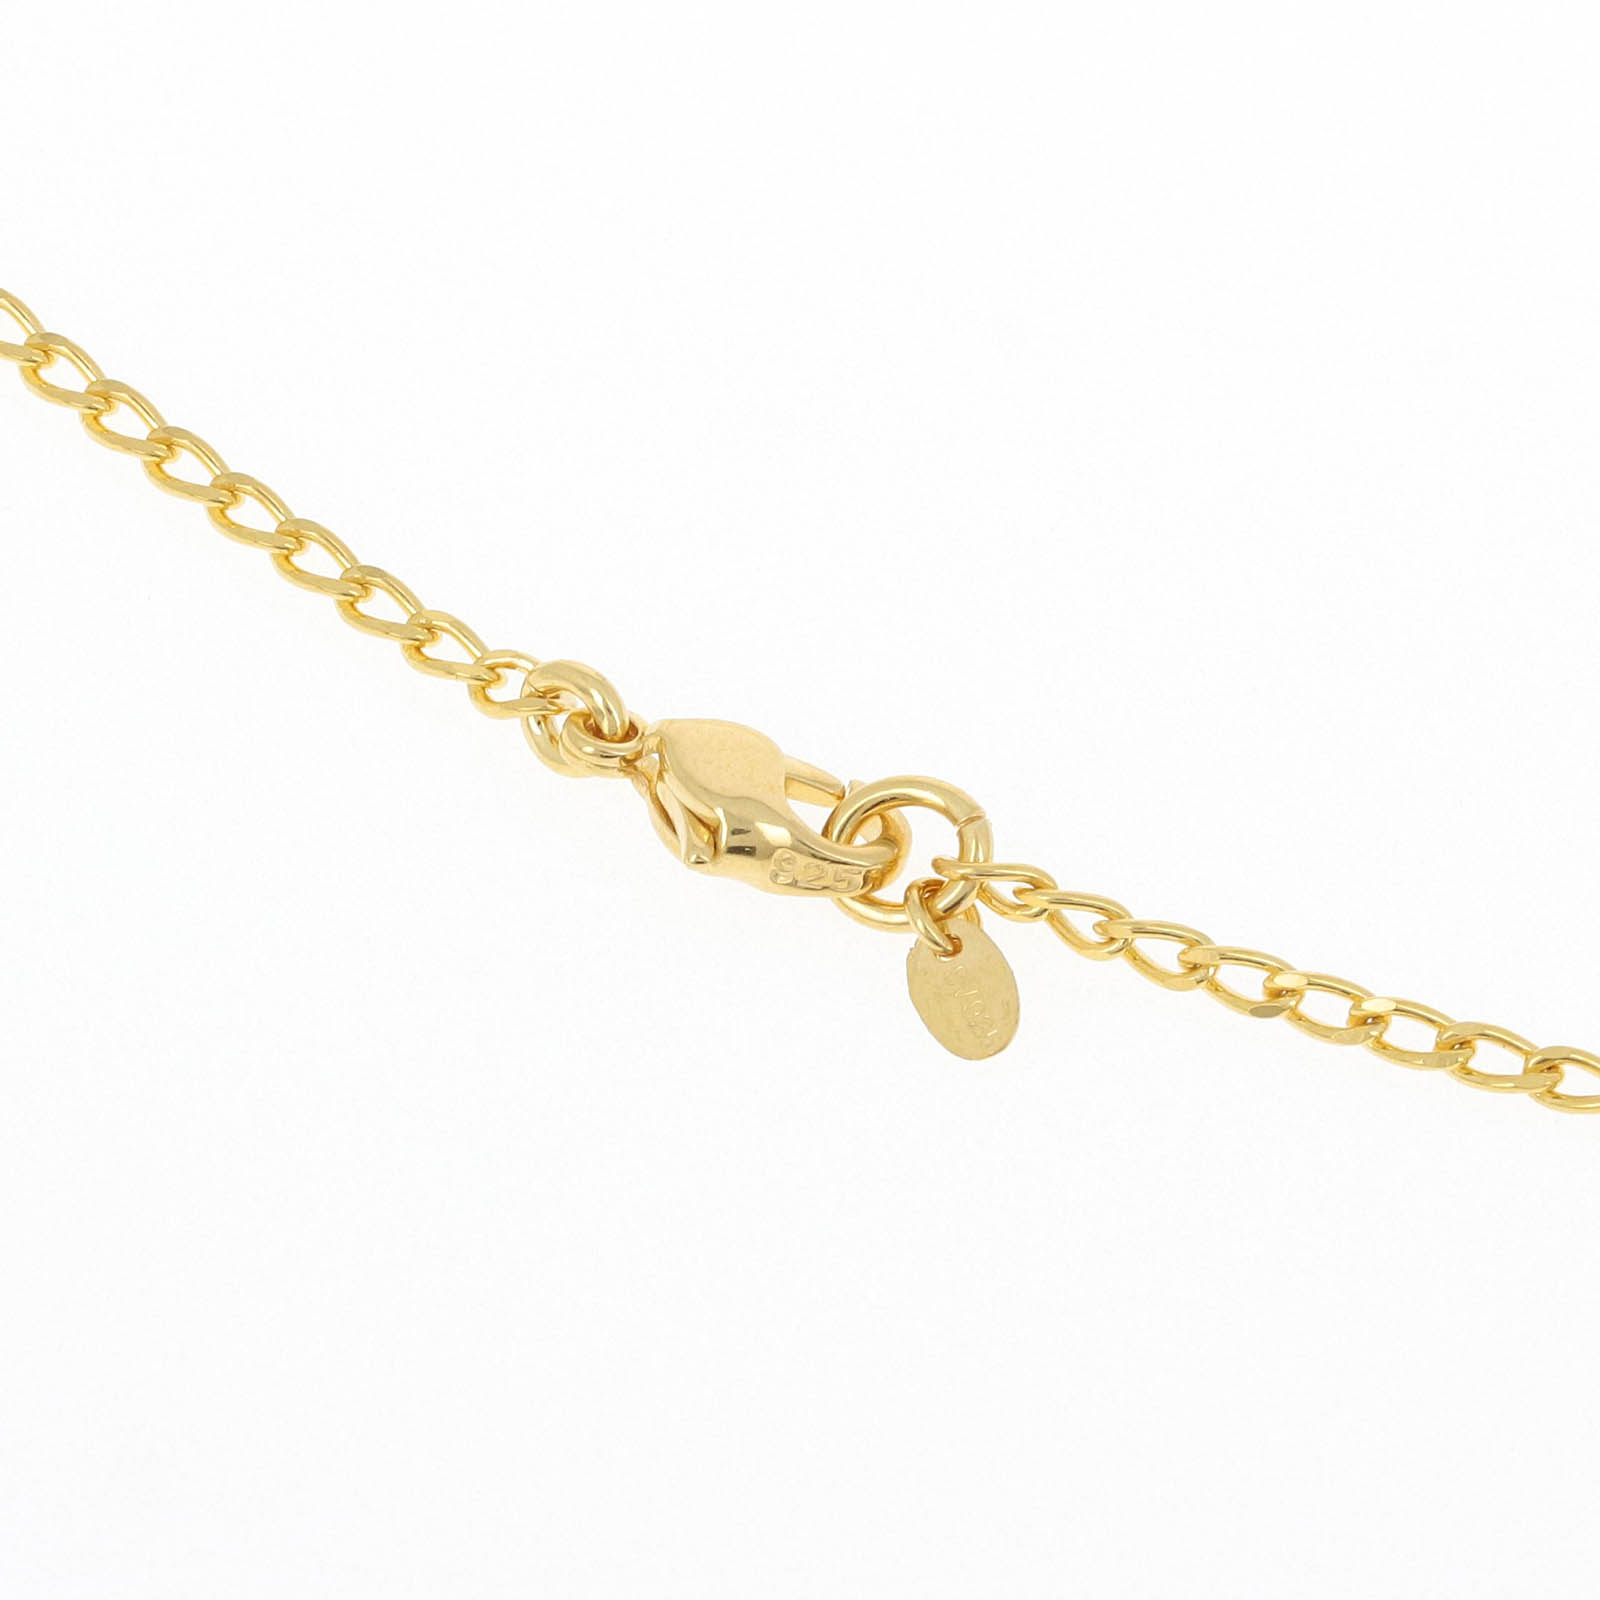 JUST GOOD Chain Necklace - Classic - GV